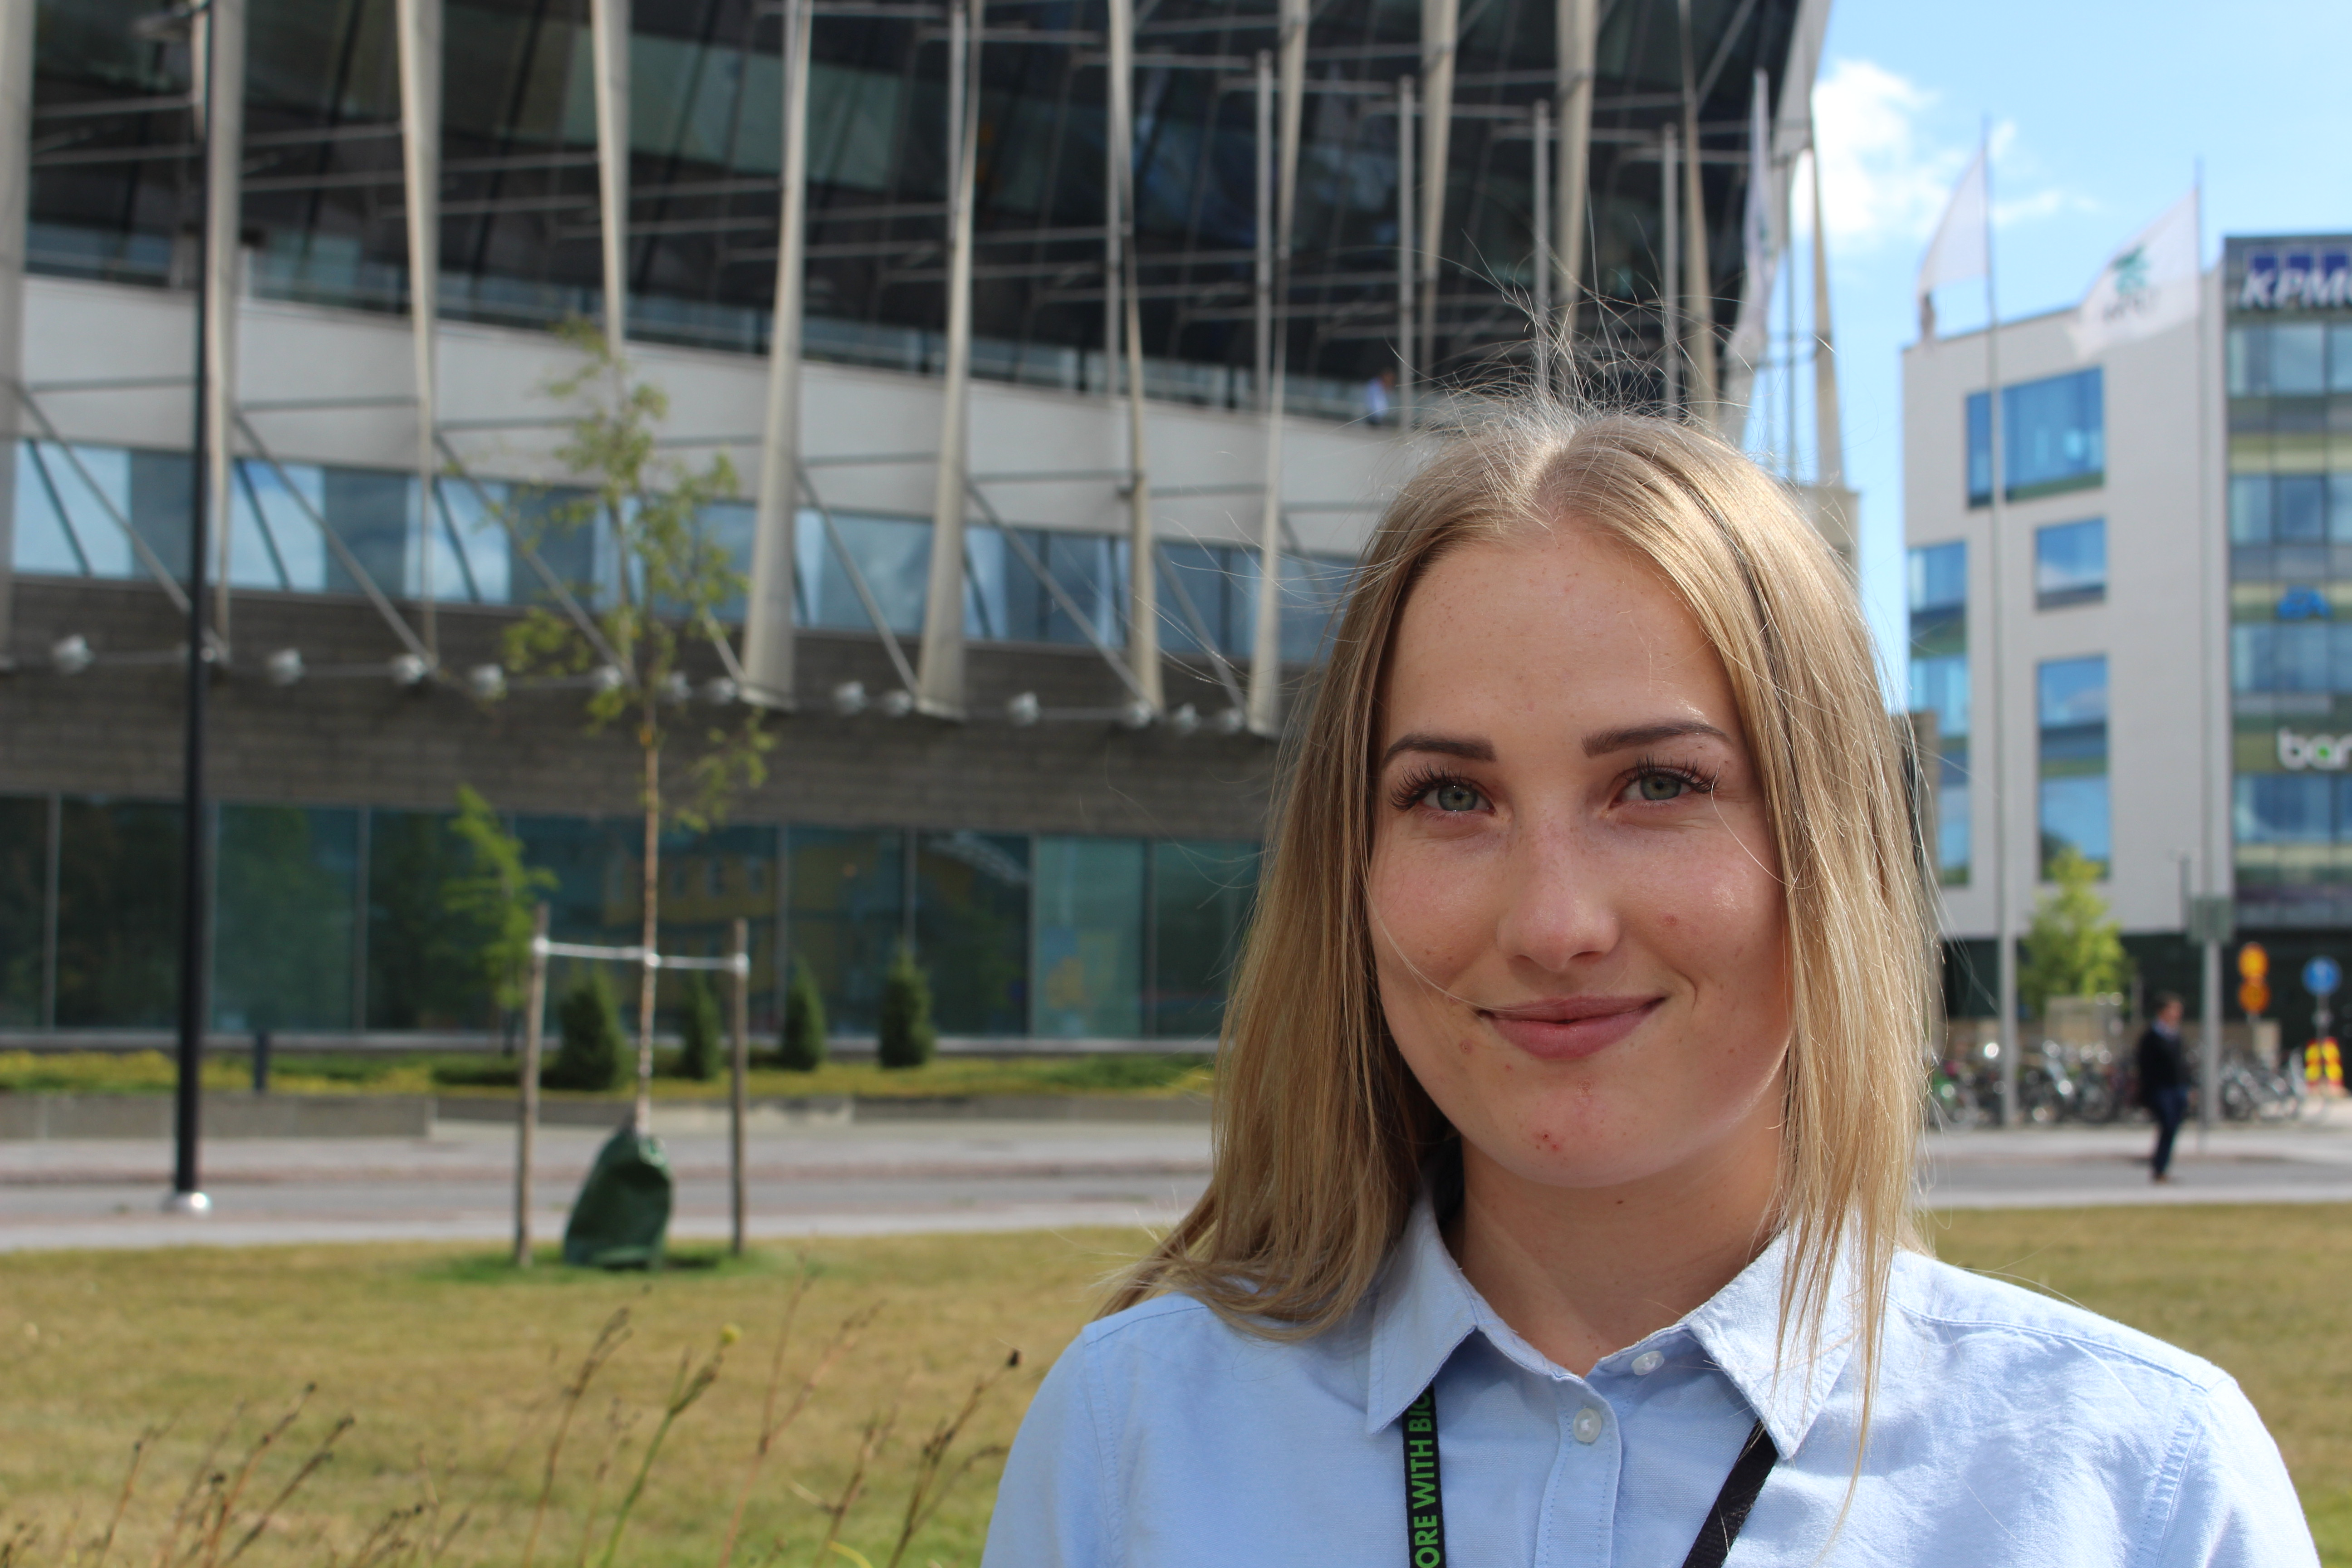 Getting the most out of summer and a job at UPM Raflatac